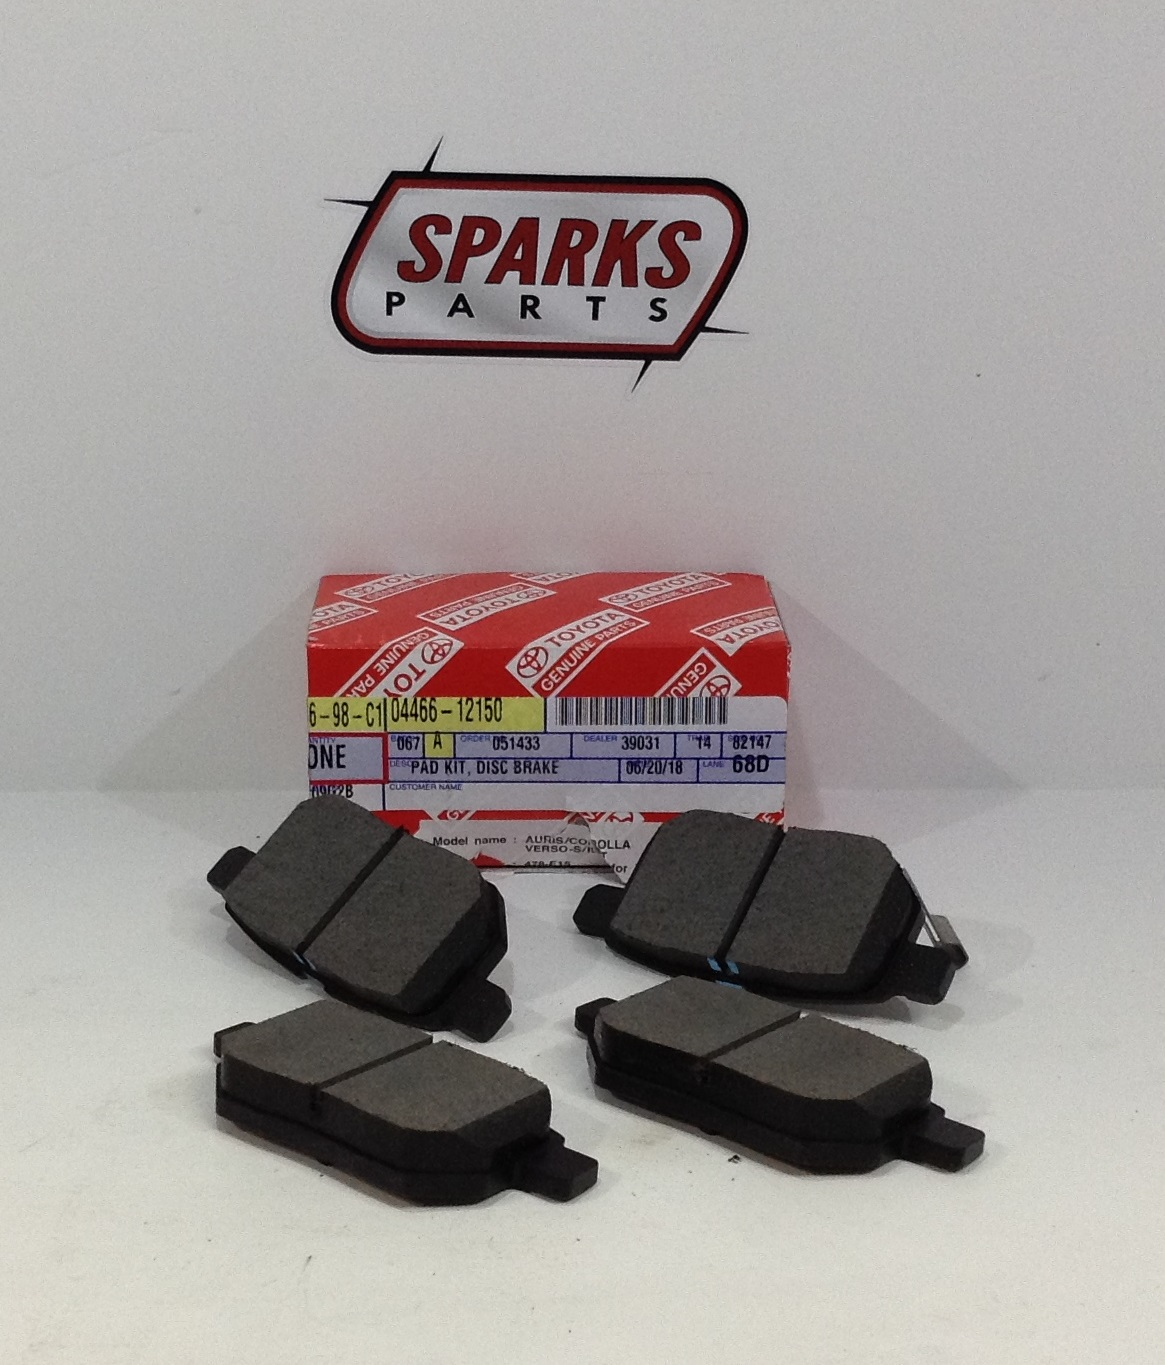 OEM (stock) Rear Brake Pads - Toyota (0446612150)